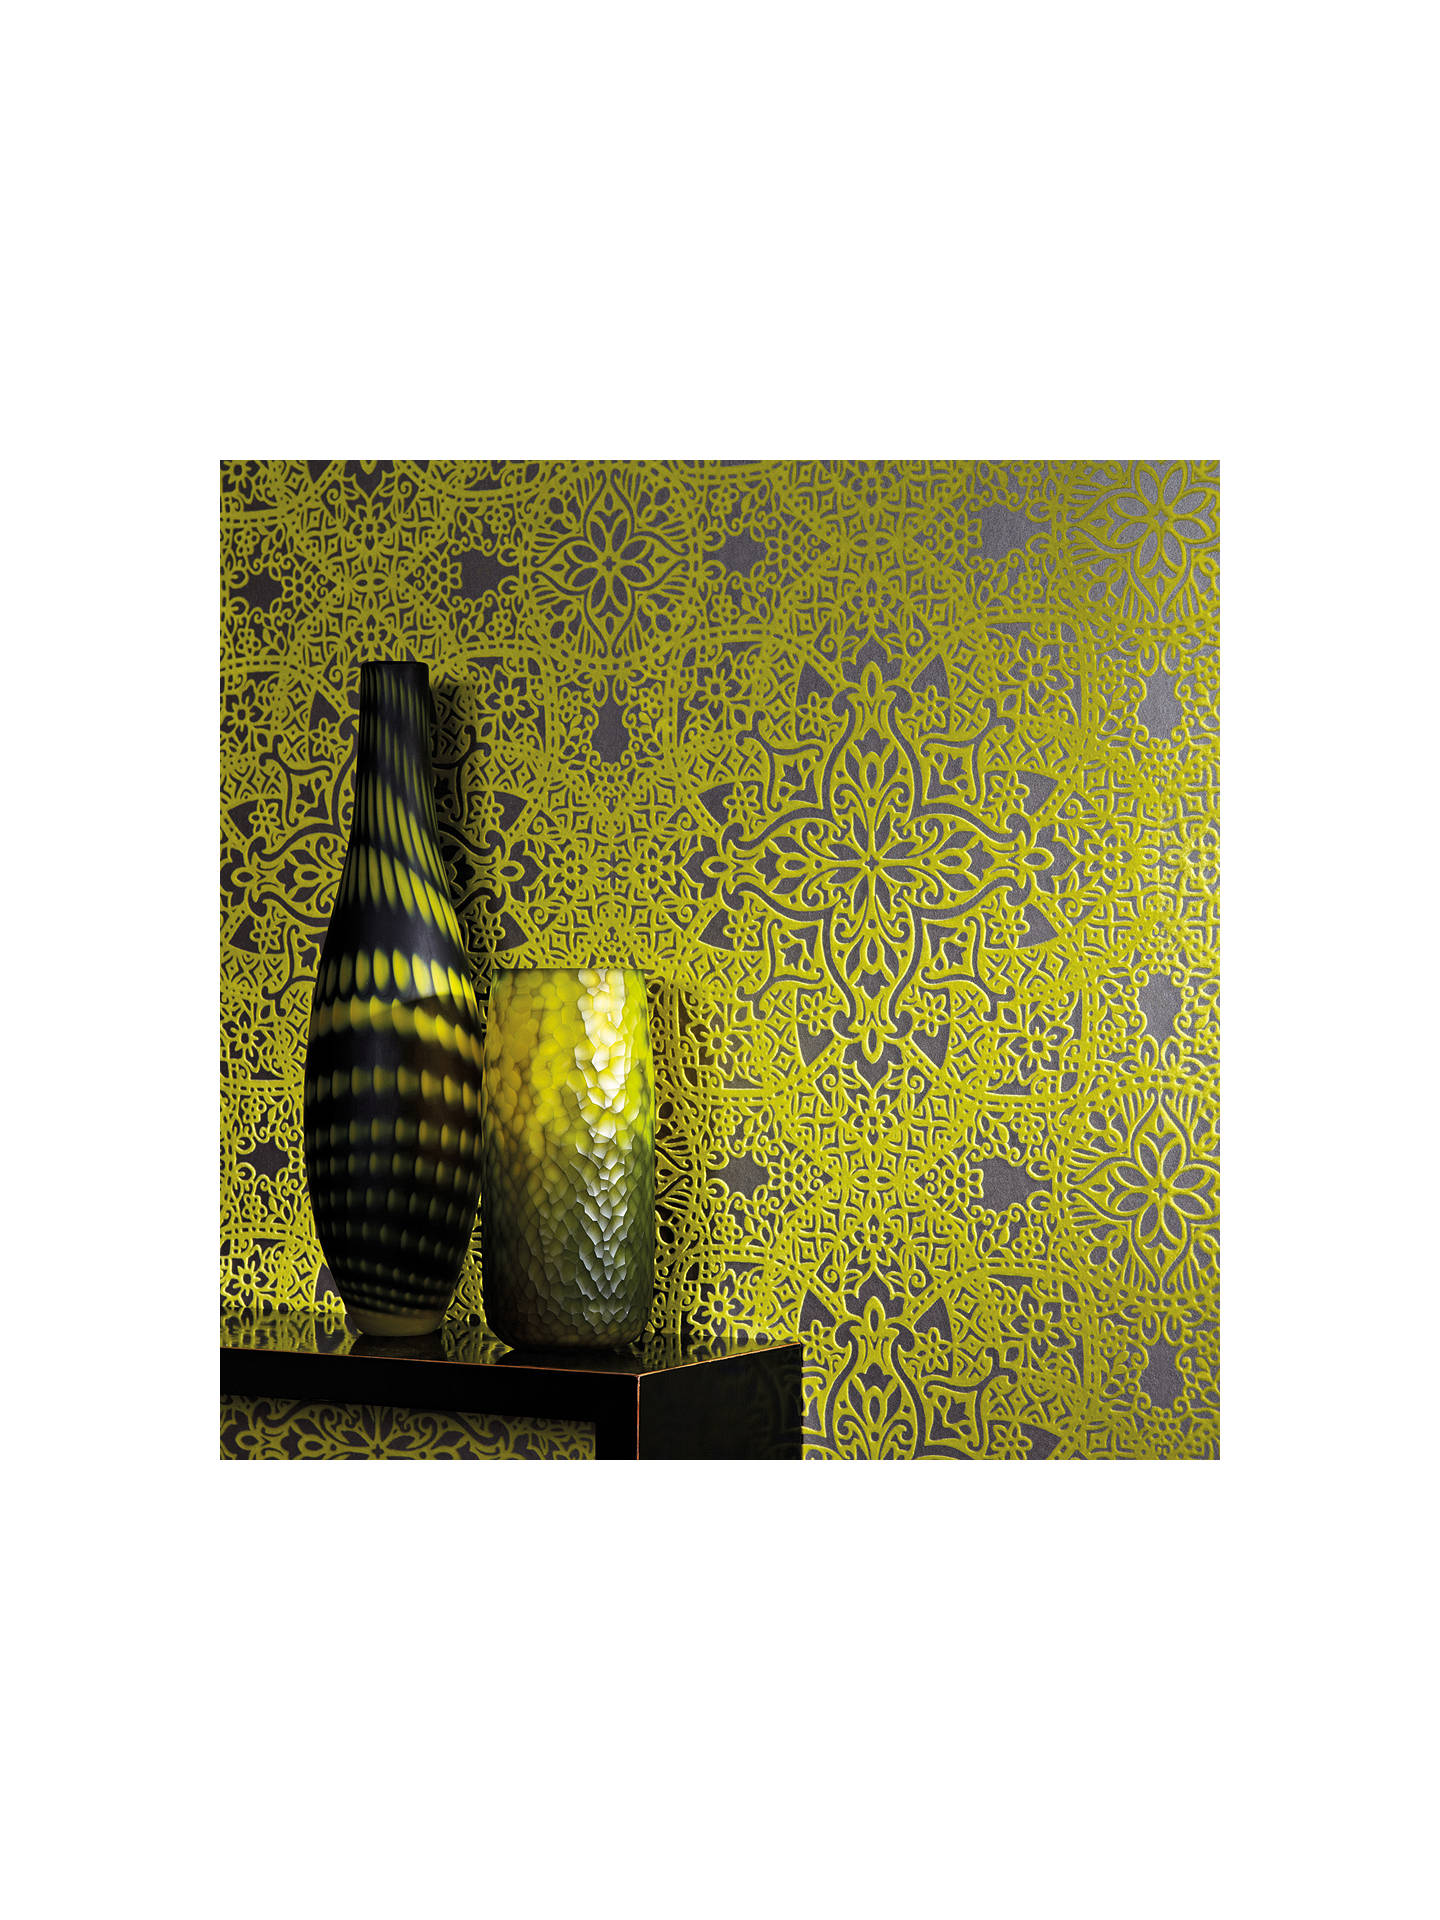 Buy Byzantine Black Edition Byzantine Flock Paste the Wall Wallpaper, W364/04 Online at johnlewis.com